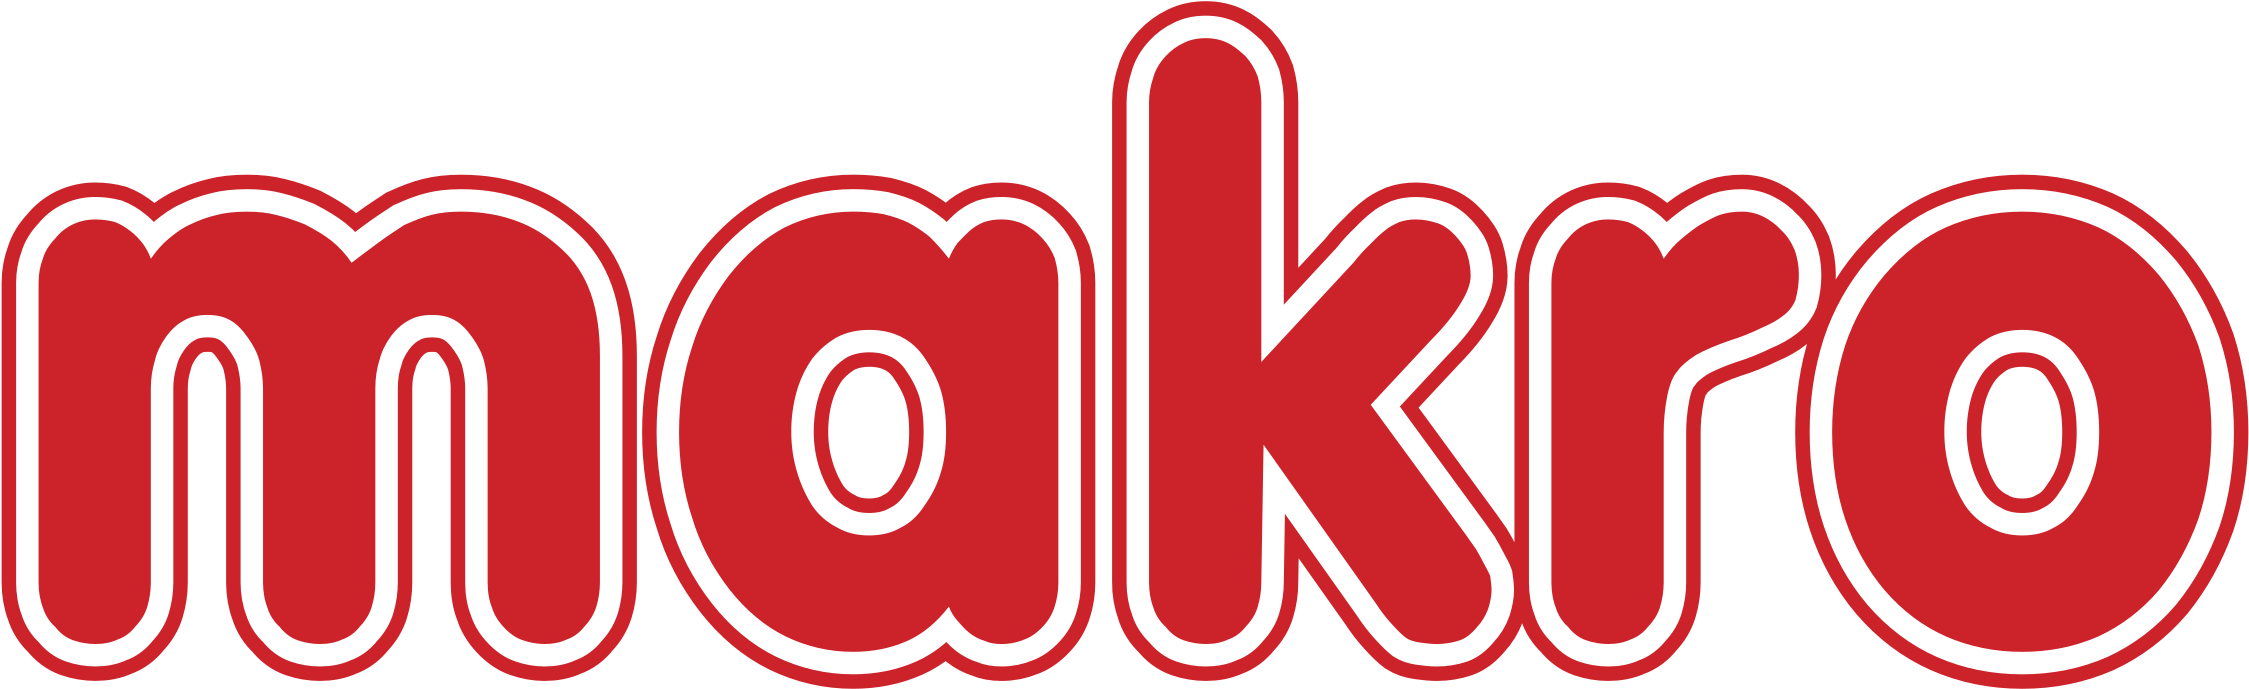 Download Makro Logo Png Transparent.